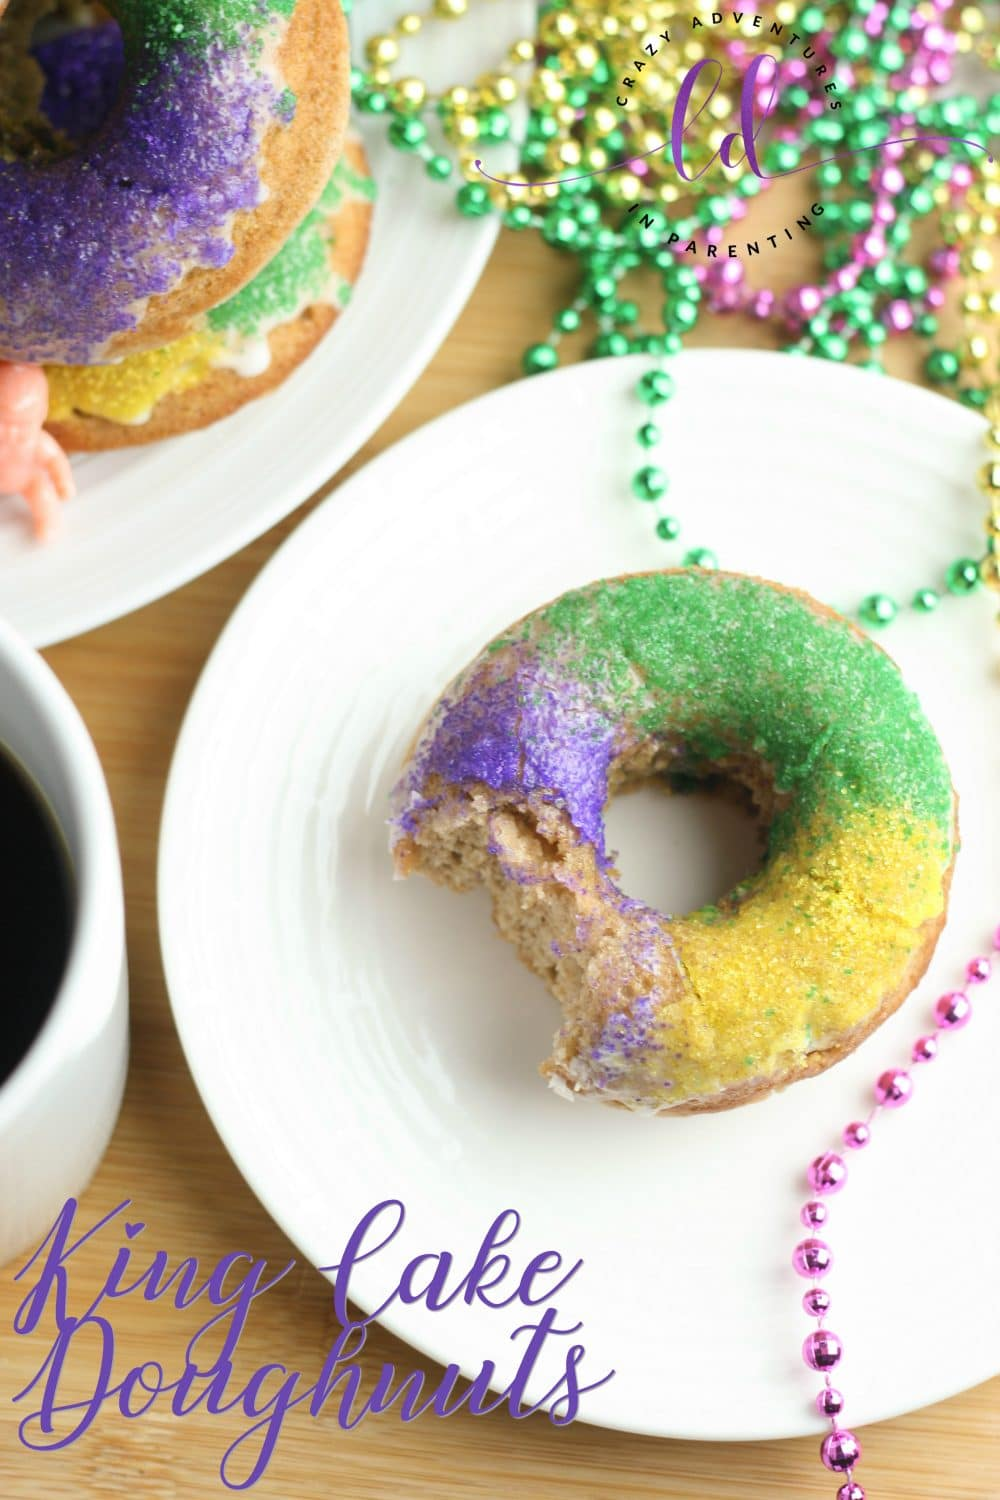 King Cake Doughnuts Recipe